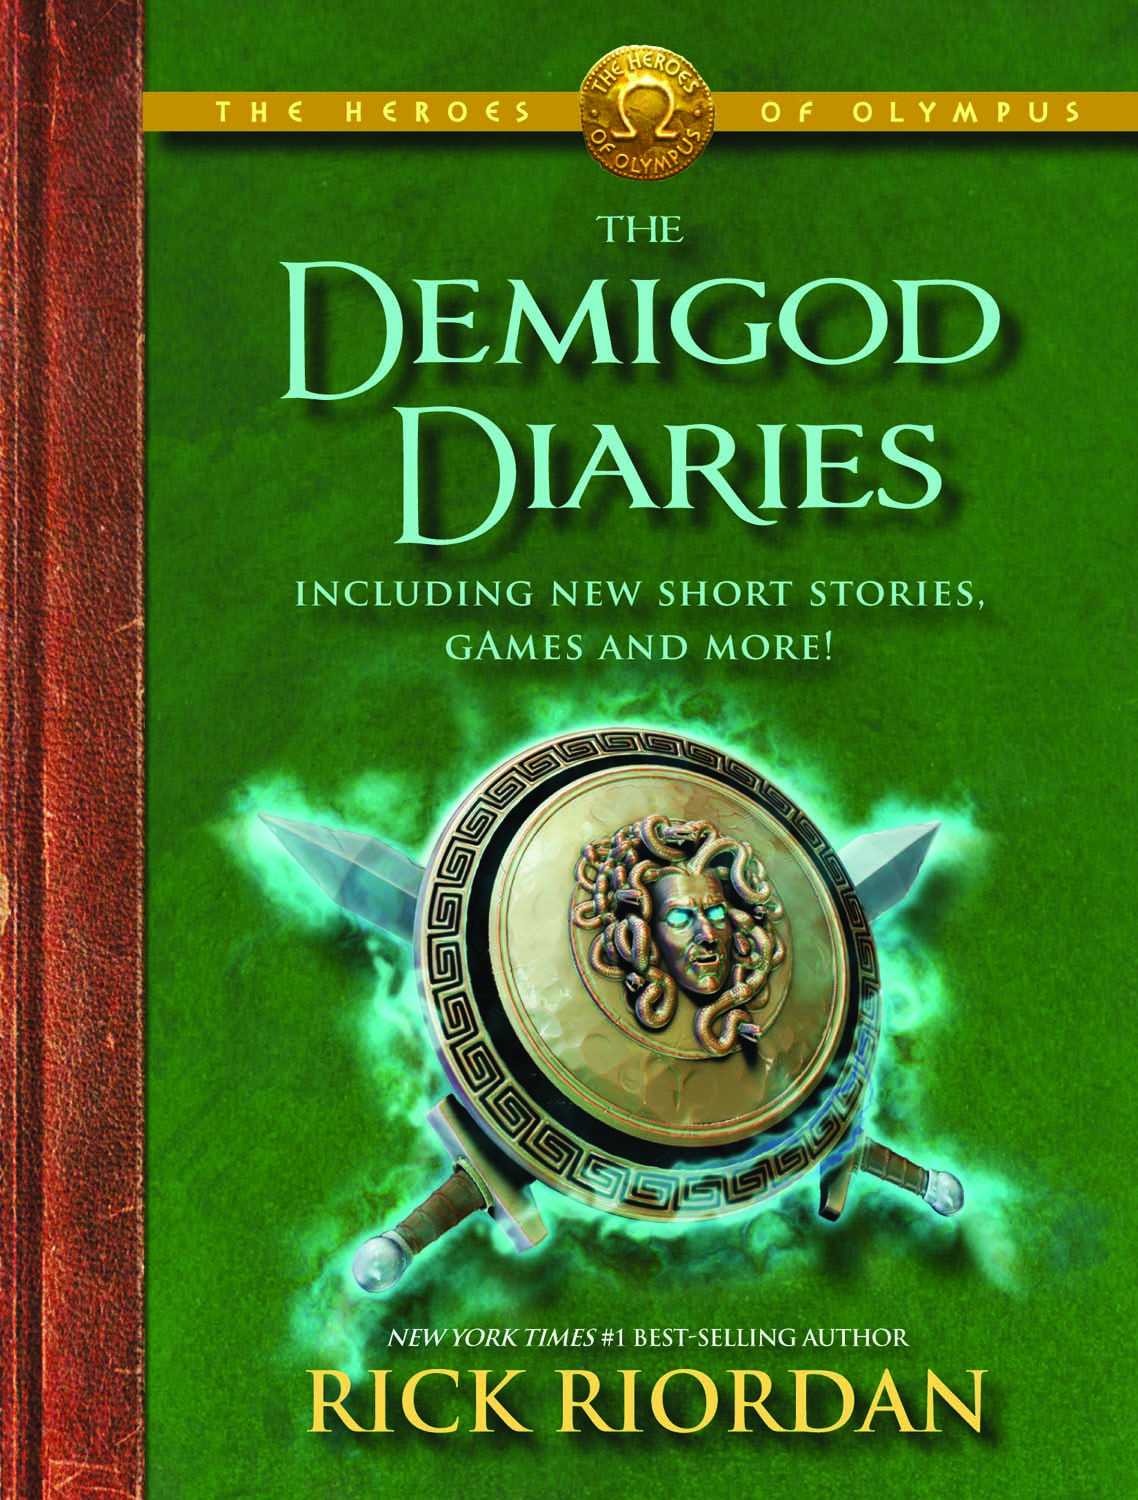 rick riordans blog the demigod diaries arrive august